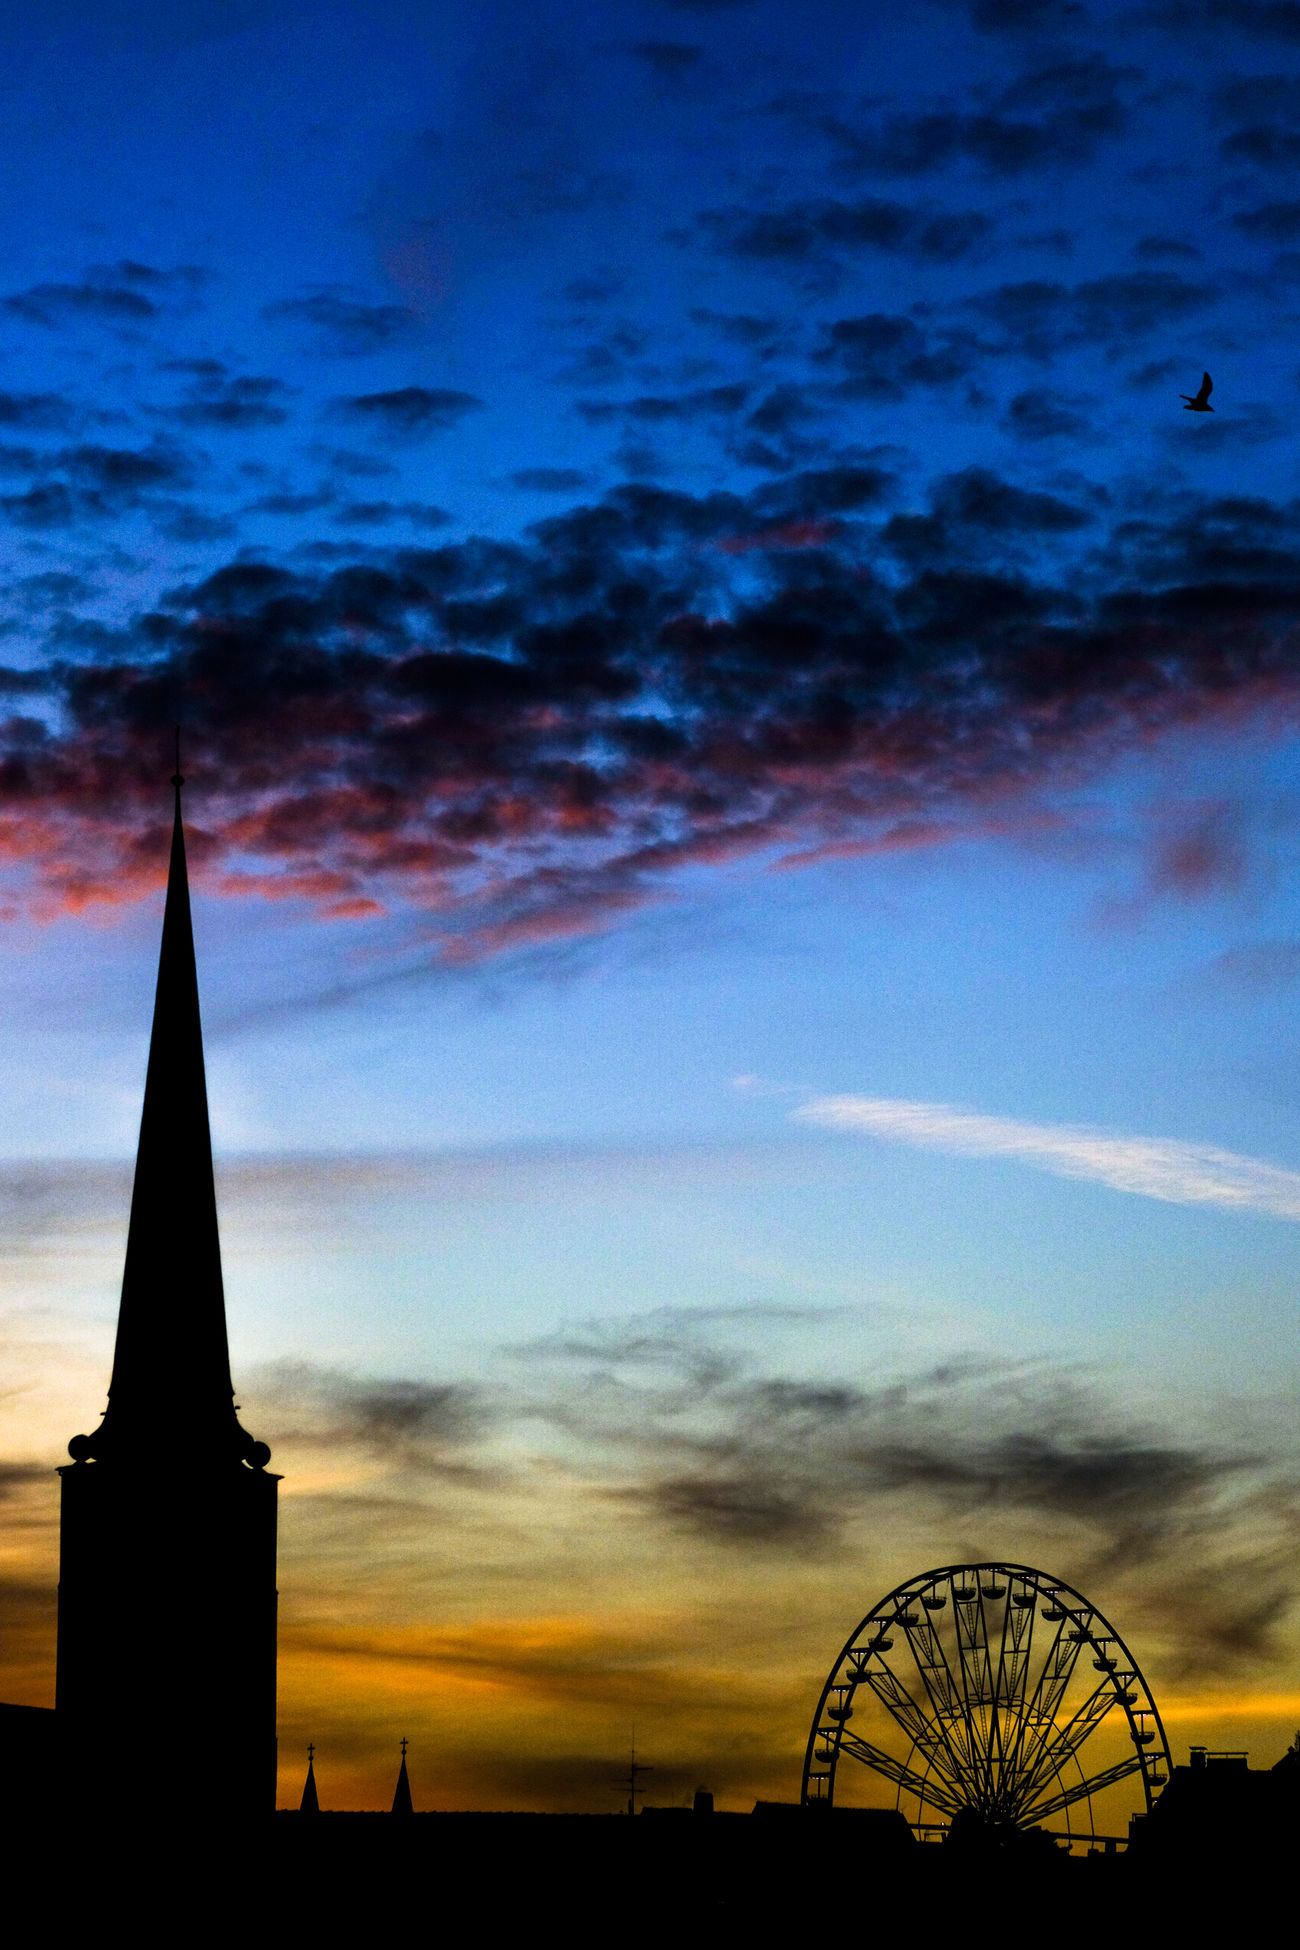 Did you know that Lübeck is under the top 5 christmas cities international. So come and visit... Architecture Built Structure Cathedral Church Cloud - Sky Embrace Urban Life Ferriswheel Fresh On Eyeem  FUJIFILM X-T2 Lübeck Old Europe Outdoors Riesenrad Silhouette Sky St. Jakobi Kirche Zu Lübeck Sunset World Heritage Change Encounters